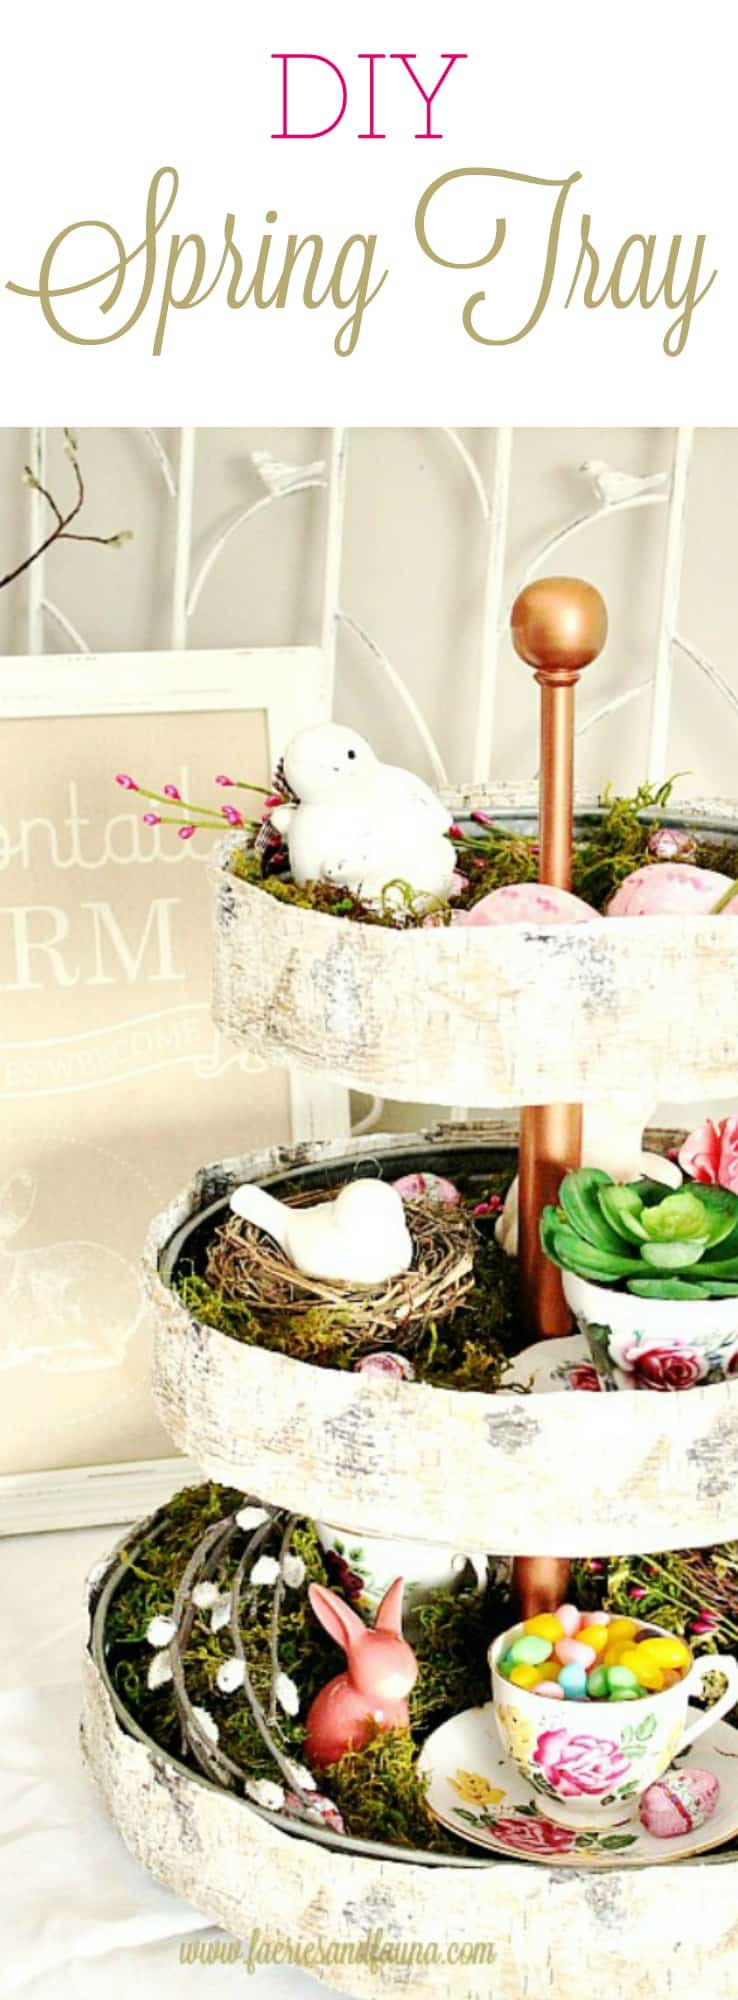 DIY Spring décor, Spring decorations, Easter decorations, Easter centerpieces, tiered tray ideas, spring décor ideas, spring home décor, spring decorations, DIY Easter décor, three tier tray, spring decor